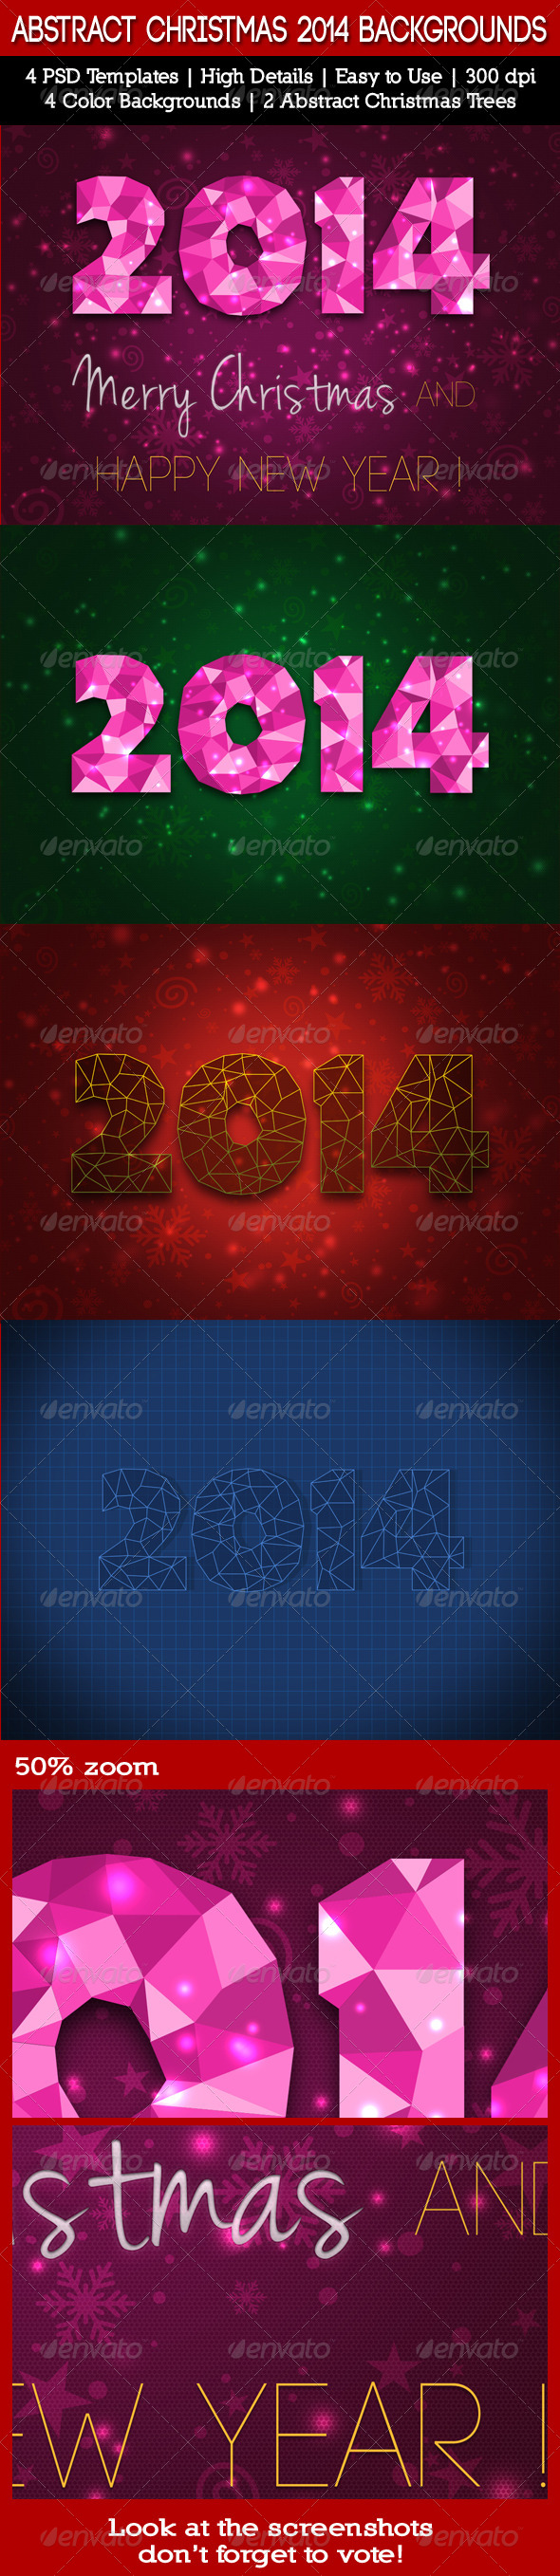 GraphicRiver Abstract Christmas 2014 Backgrounds 6372090